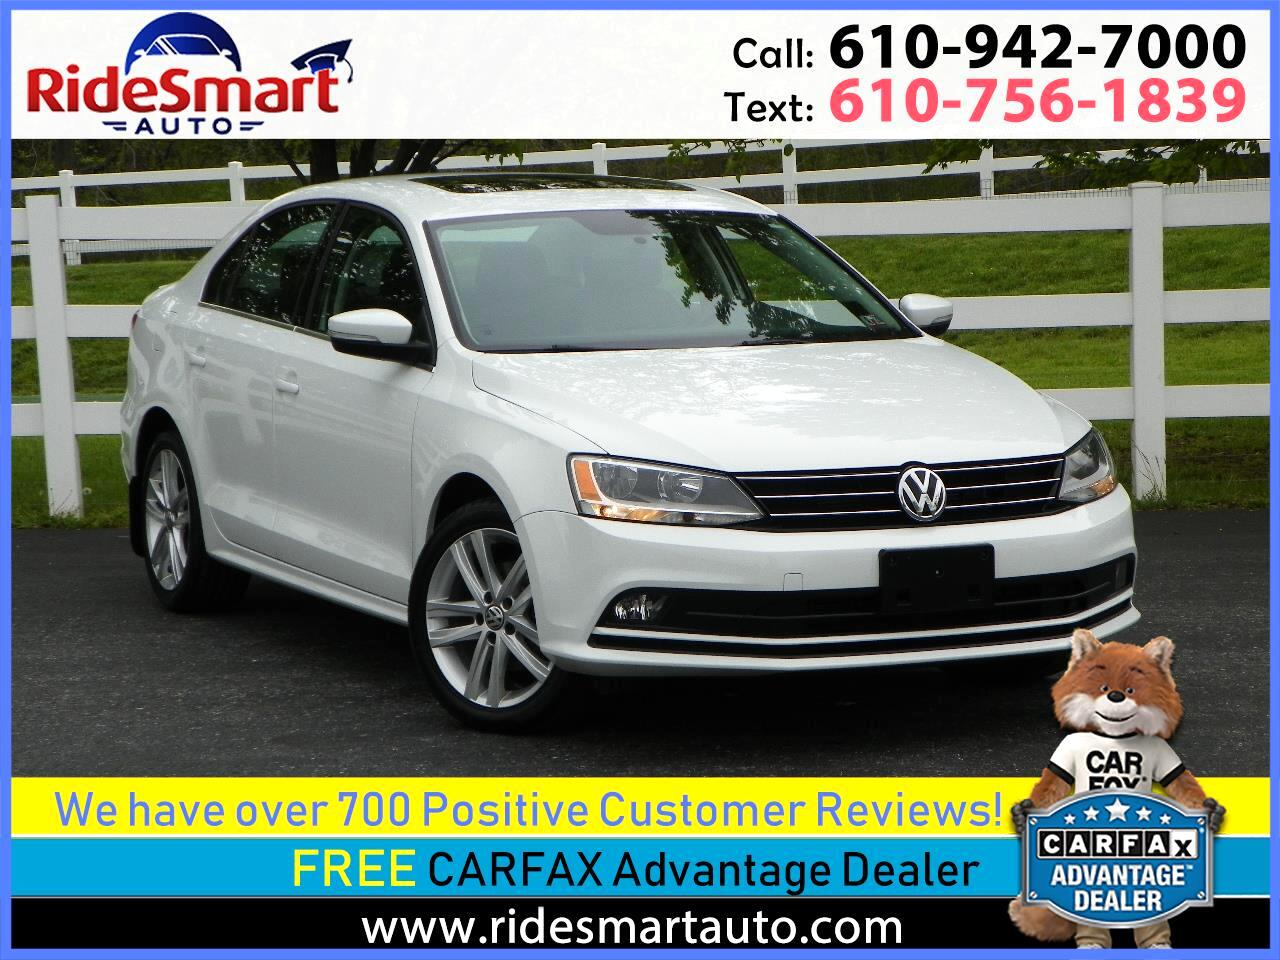 2015 Volkswagen Jetta TDI SEL Nav-Fender Sound-Leather